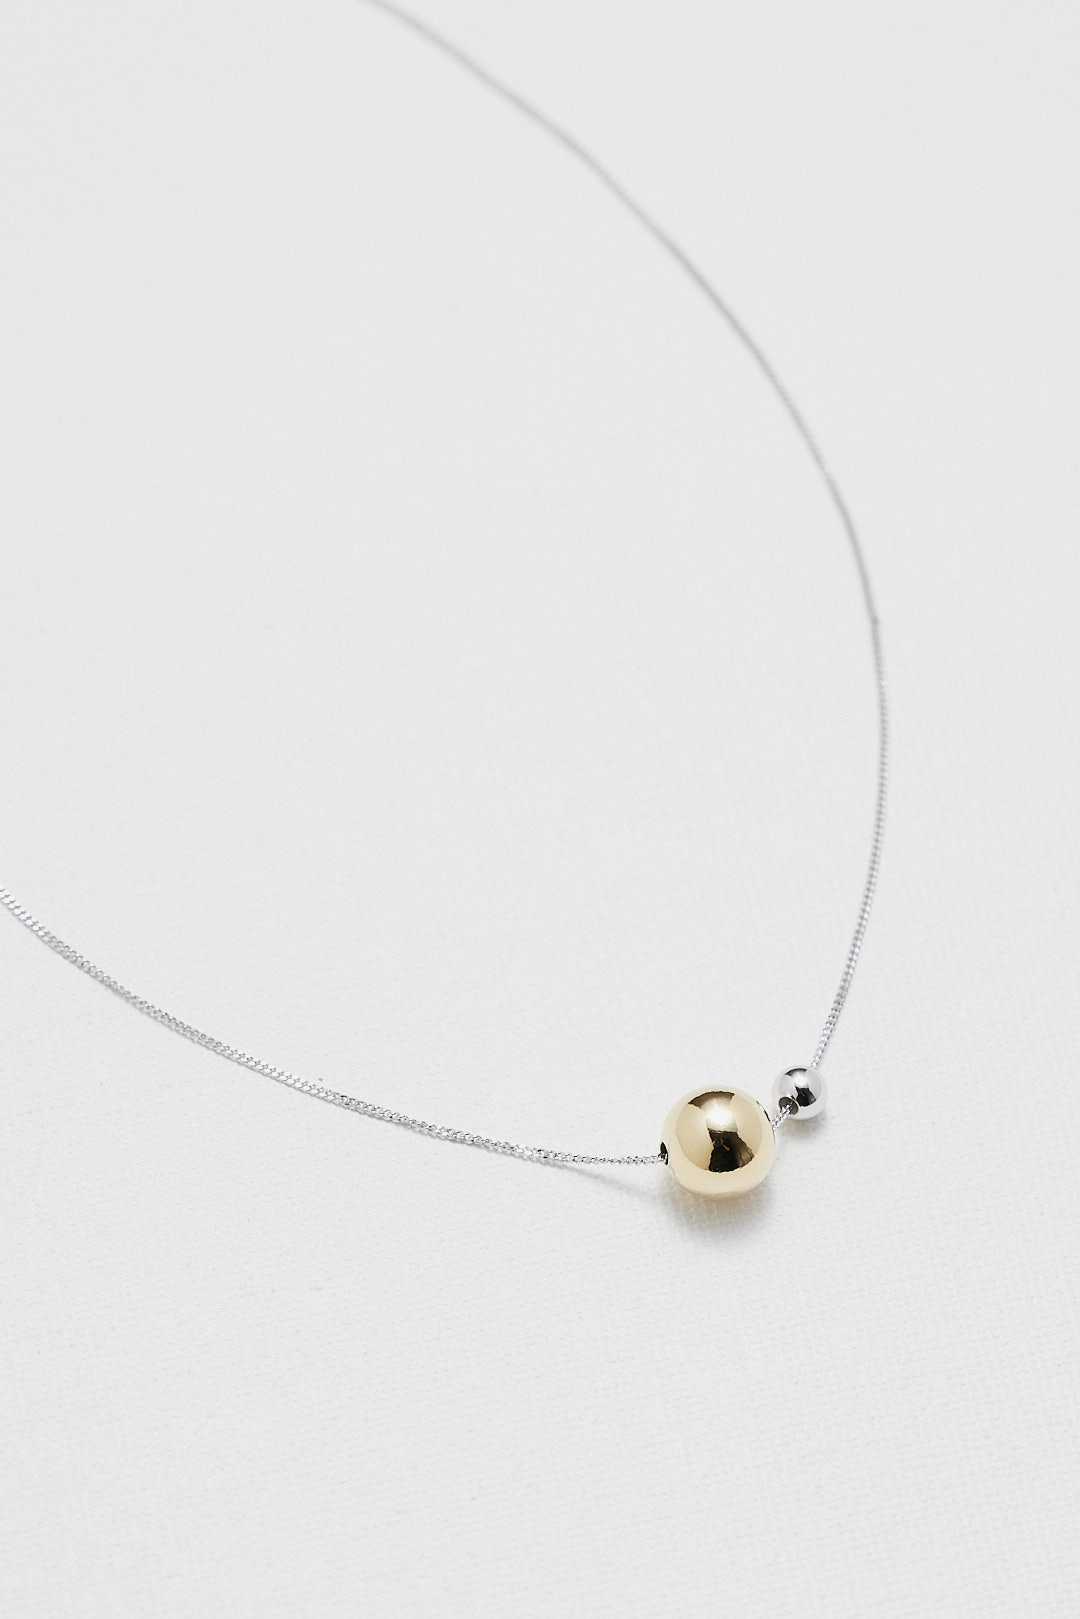 Lael Necklace